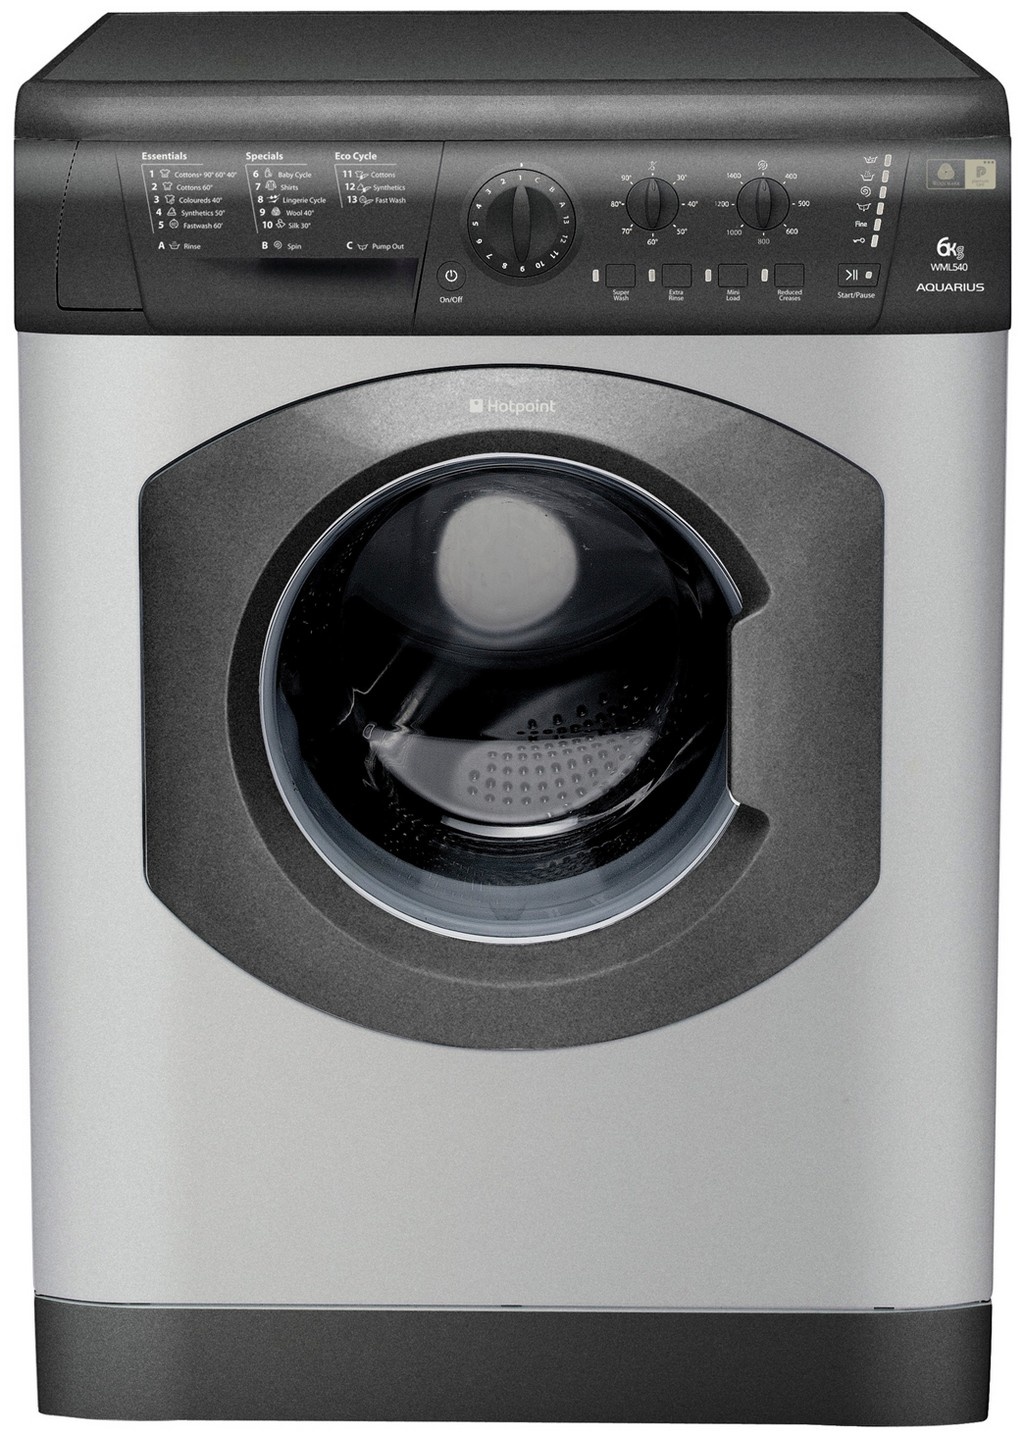 washing machine comparison, haier washing machine, samsung washer